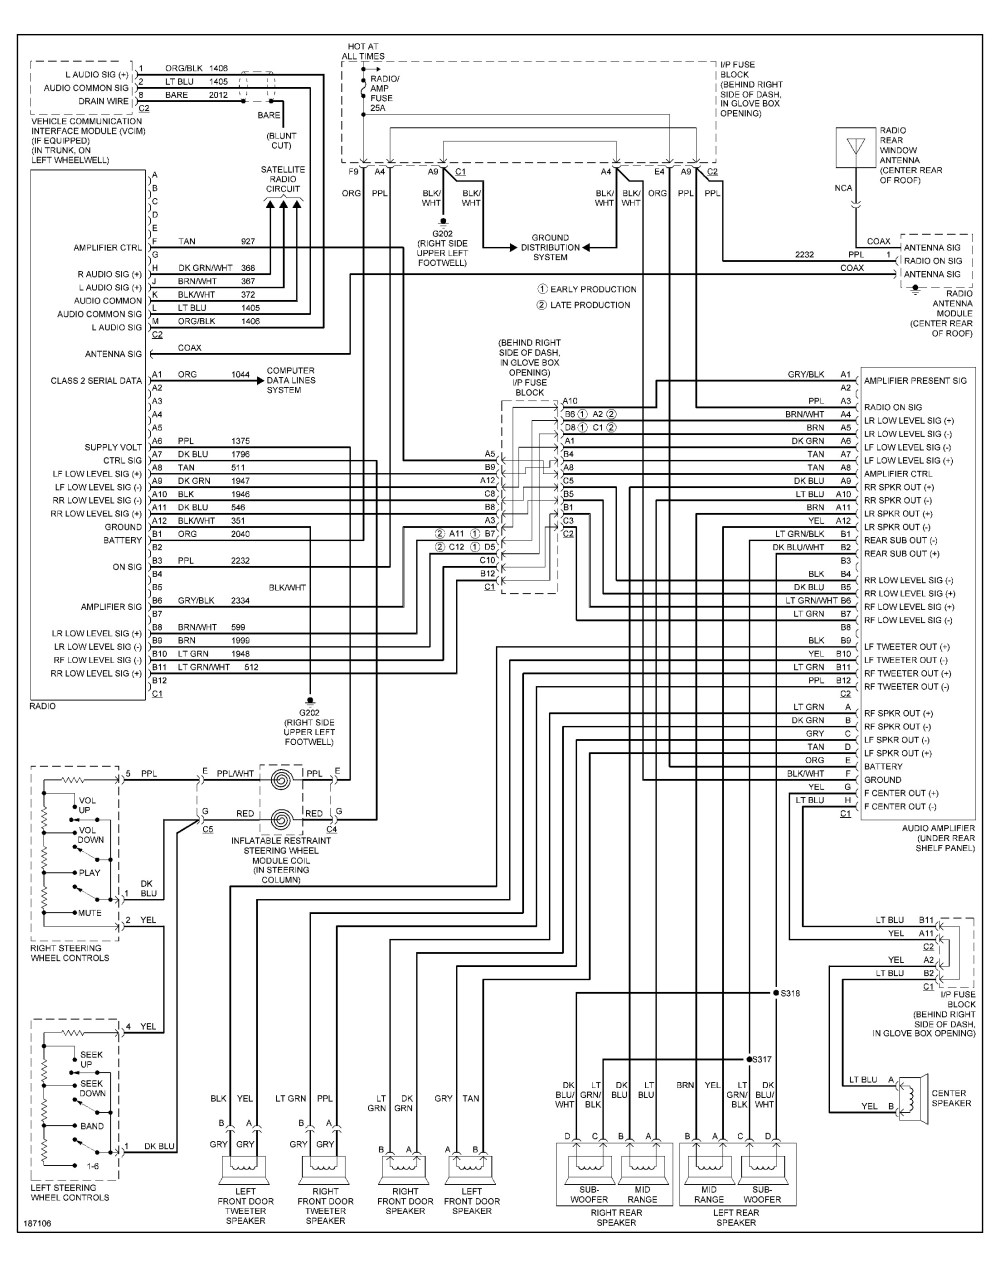 medium resolution of pontiac aztek radio wiring diagram wiring library rh 99 skriptoase de 2000 pontiac montana engine diagram